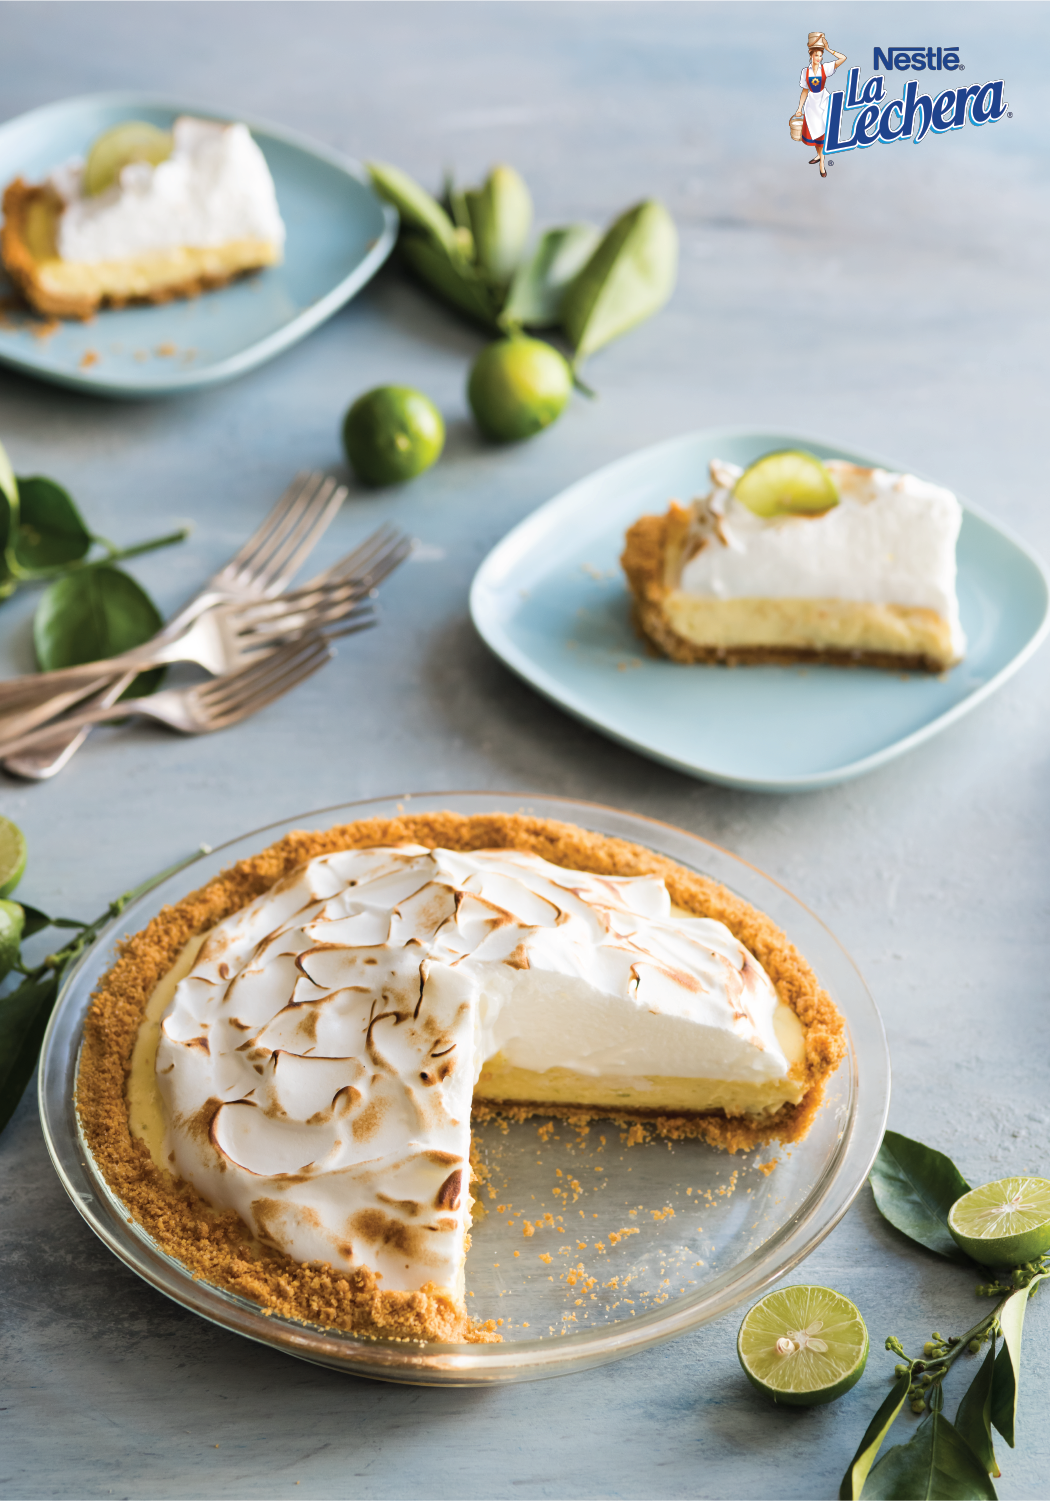 Photo of Key Lime Pie with Meringue Topping